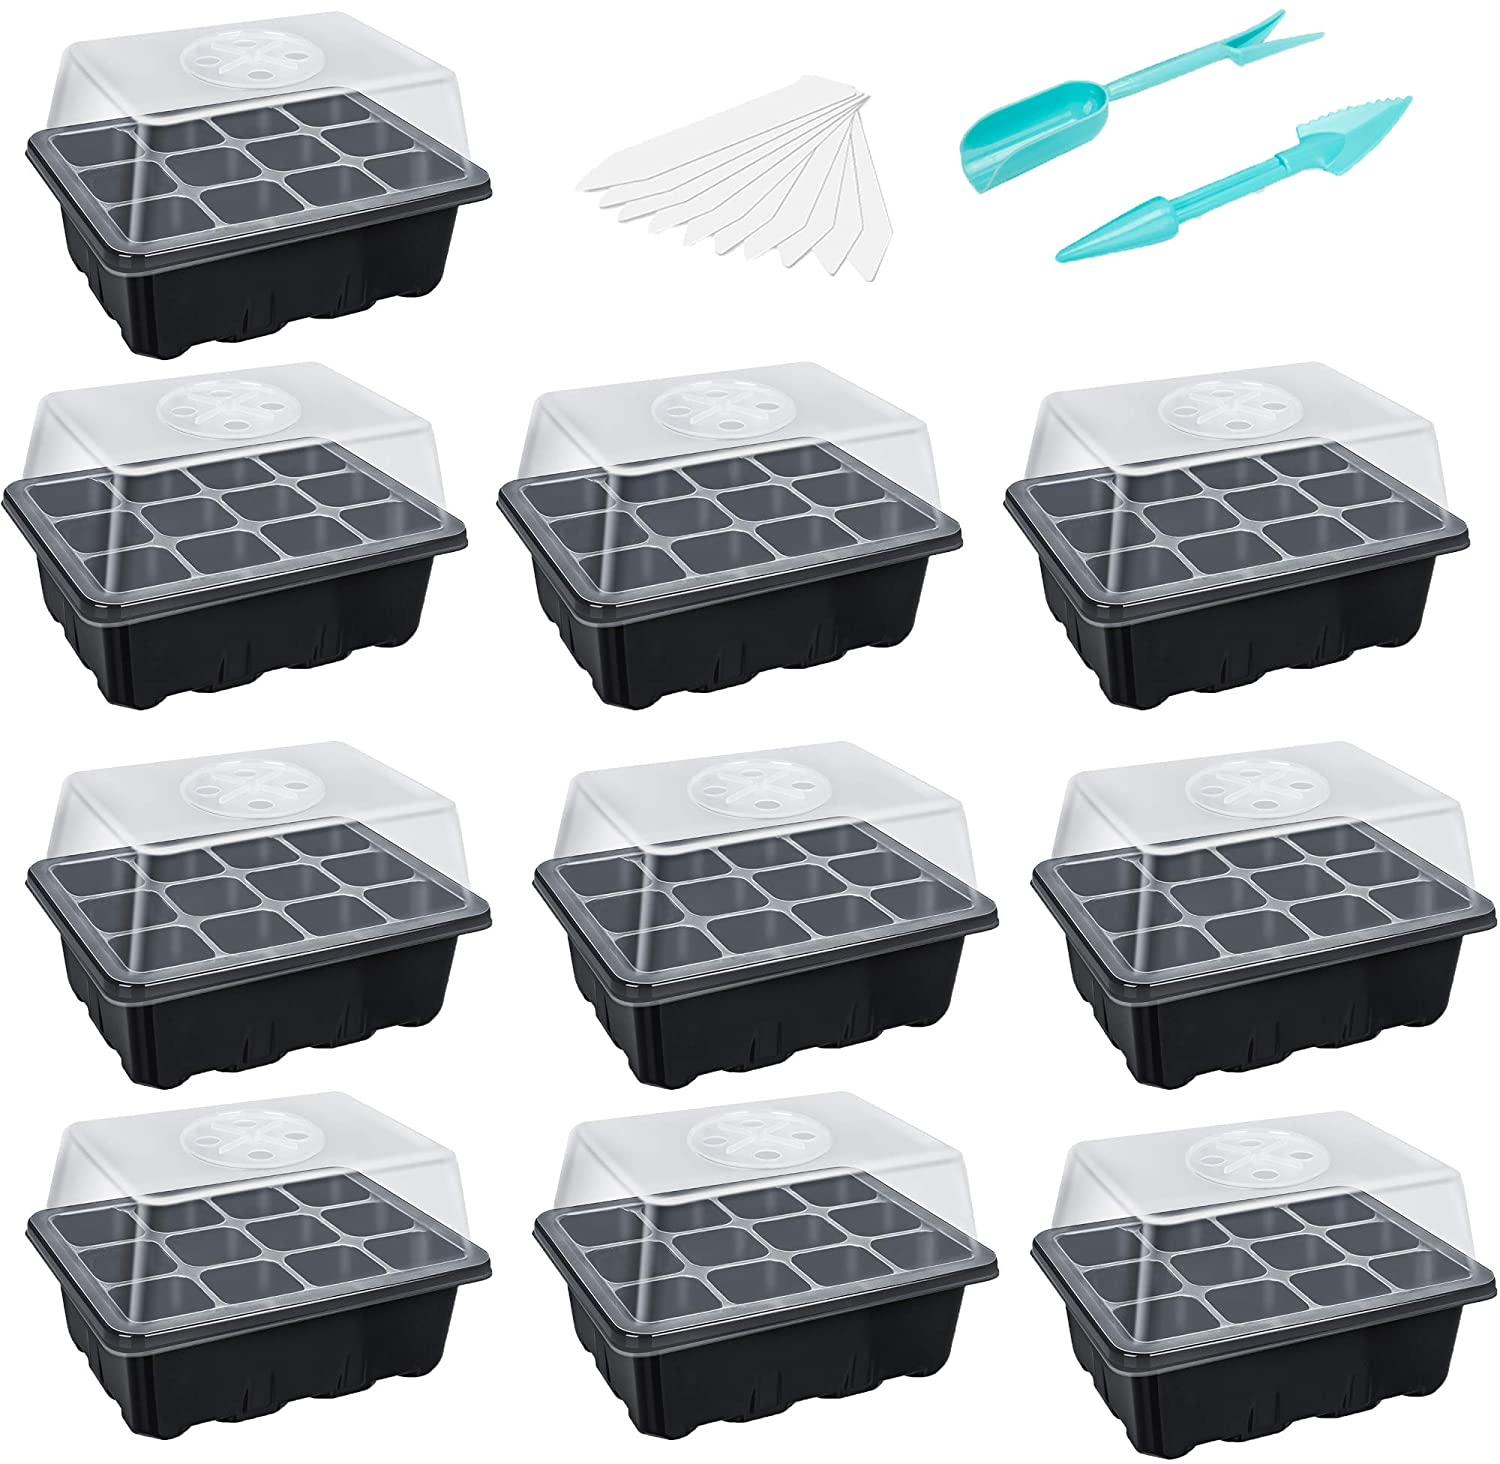 120 Cells Seed Trays Seedling Starter Tray Humidity Adjustable Plant Starting Kit with Dome and Base Greenhouse Grow Set Mini Propagator for Seeds Growing (12 Cells per Tray)